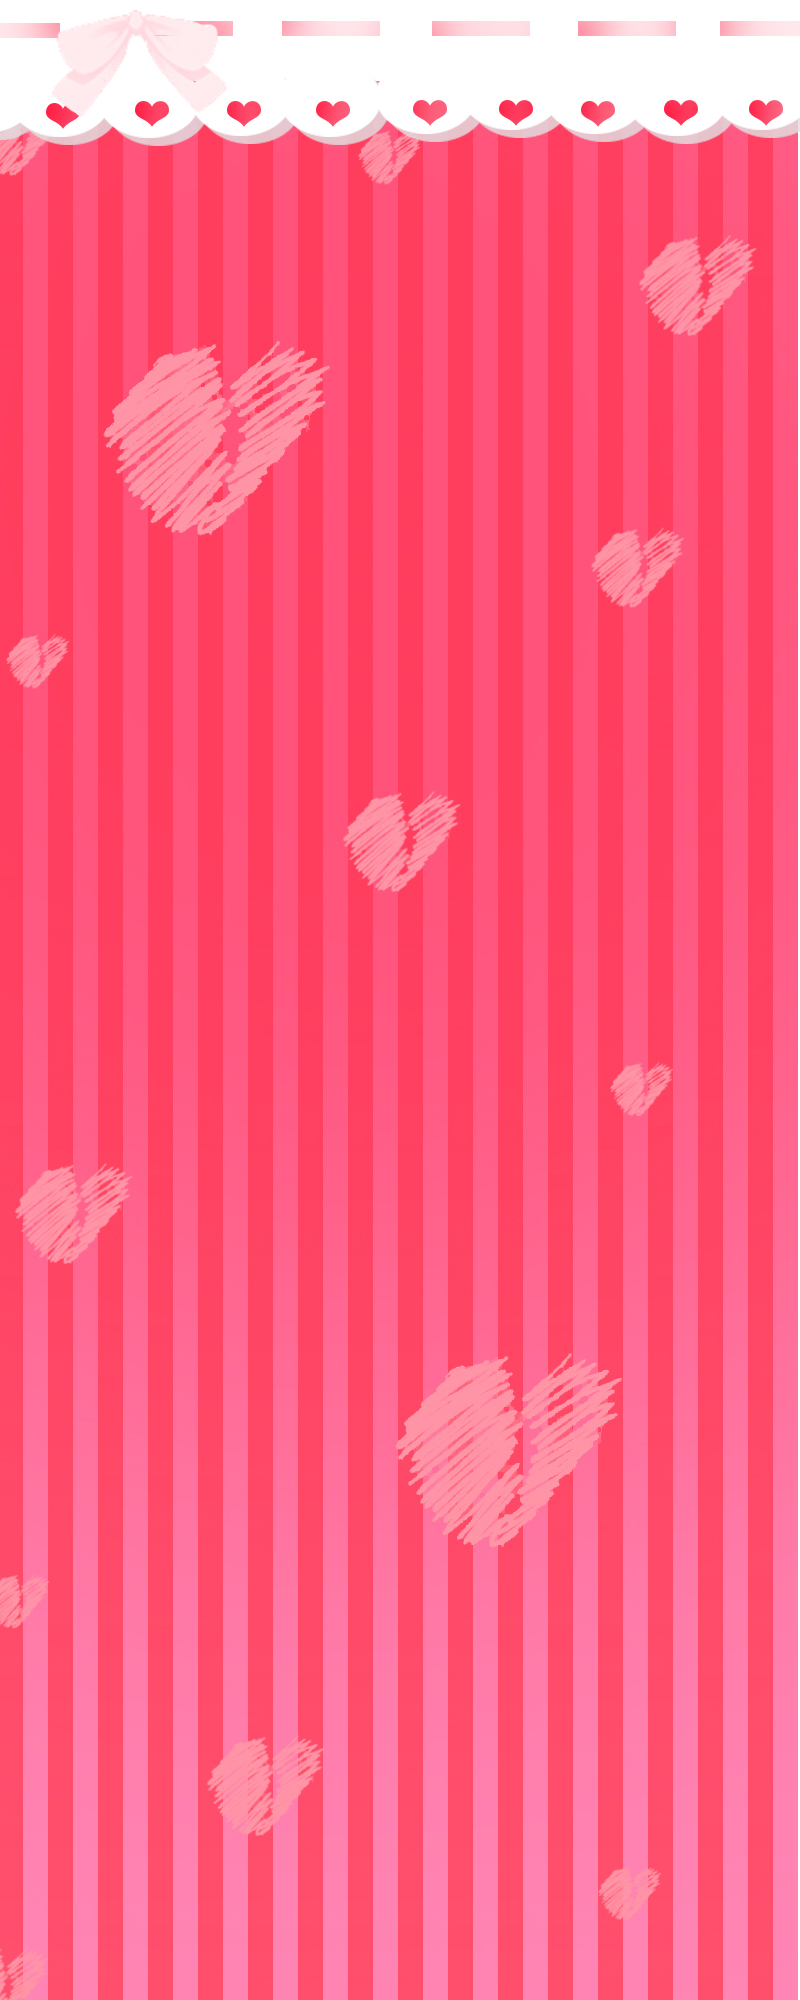 [Custom Box Background] Valentine's Day hearts by IceCreamKari